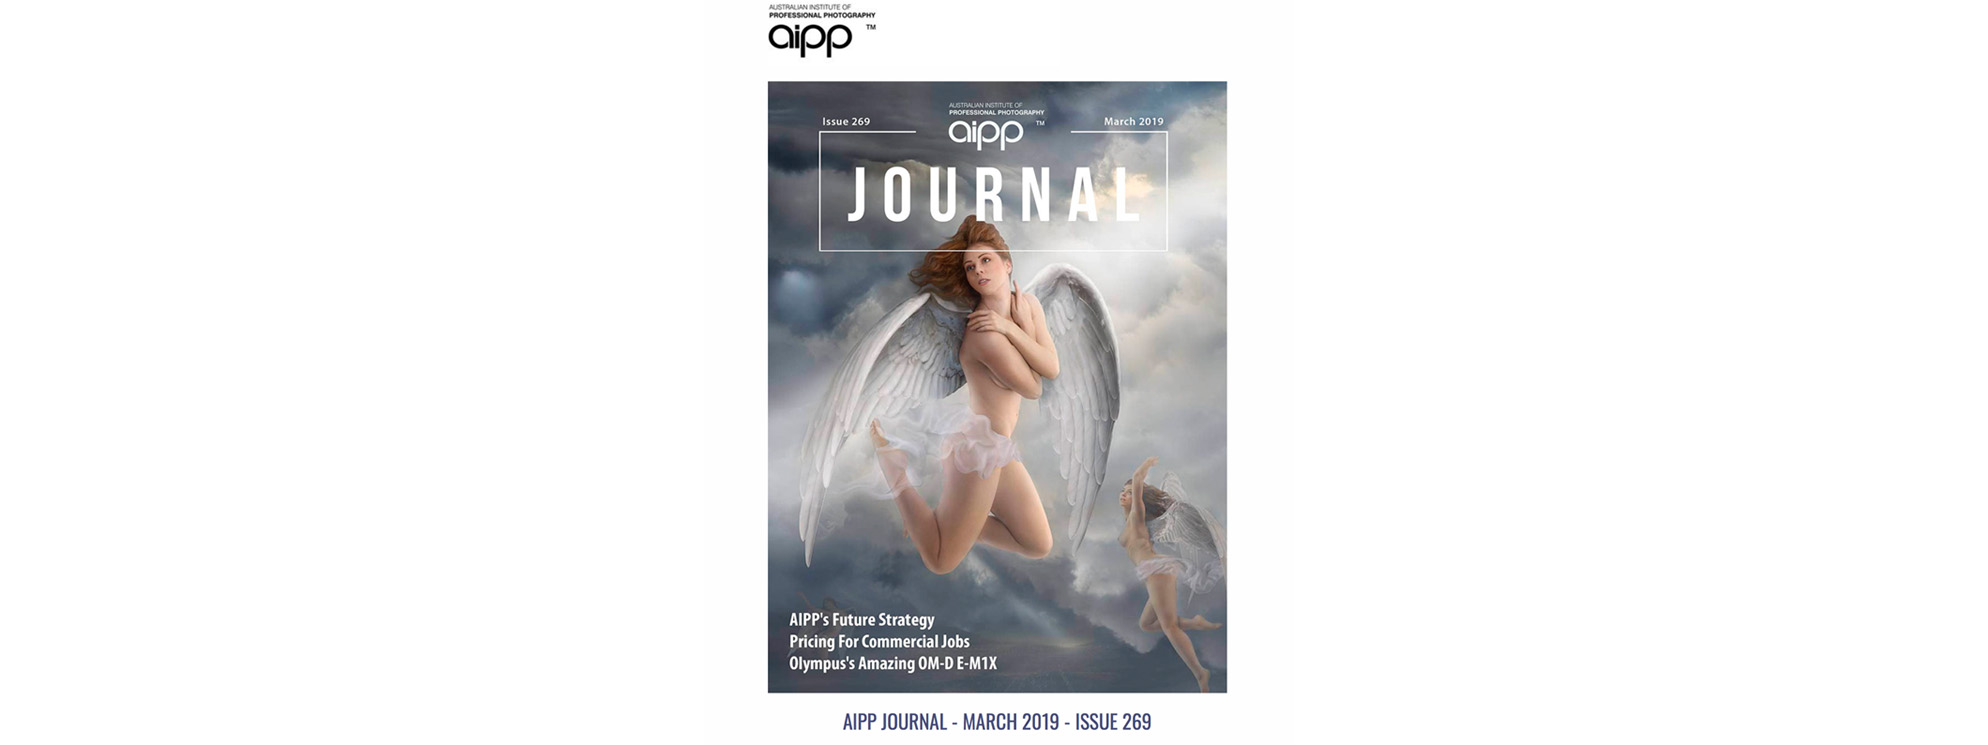 AIPP Journal Cover_Danny_Kneebone banner.jpg